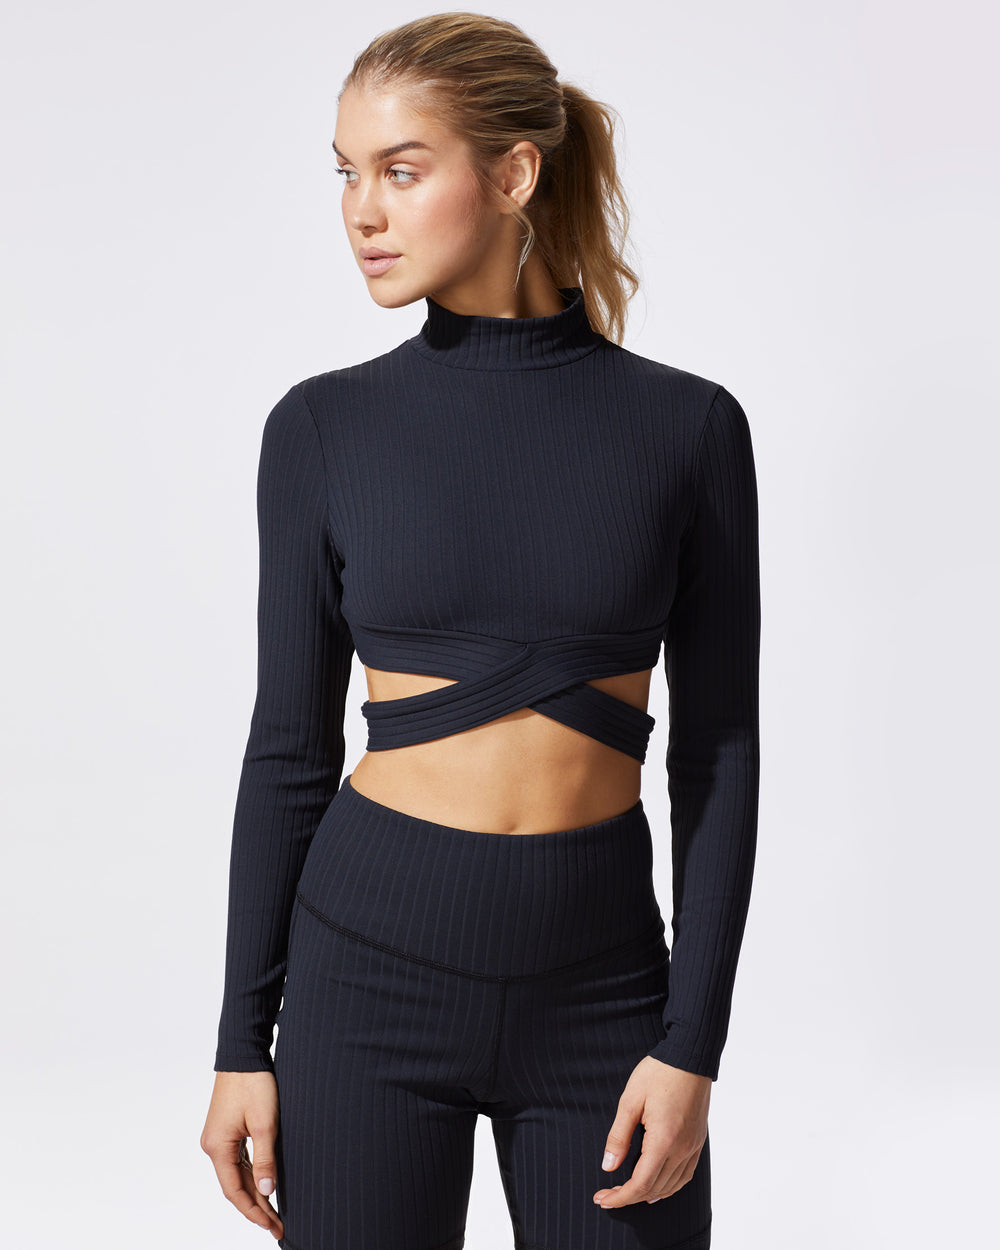 Reflex Ribbed Top - Black